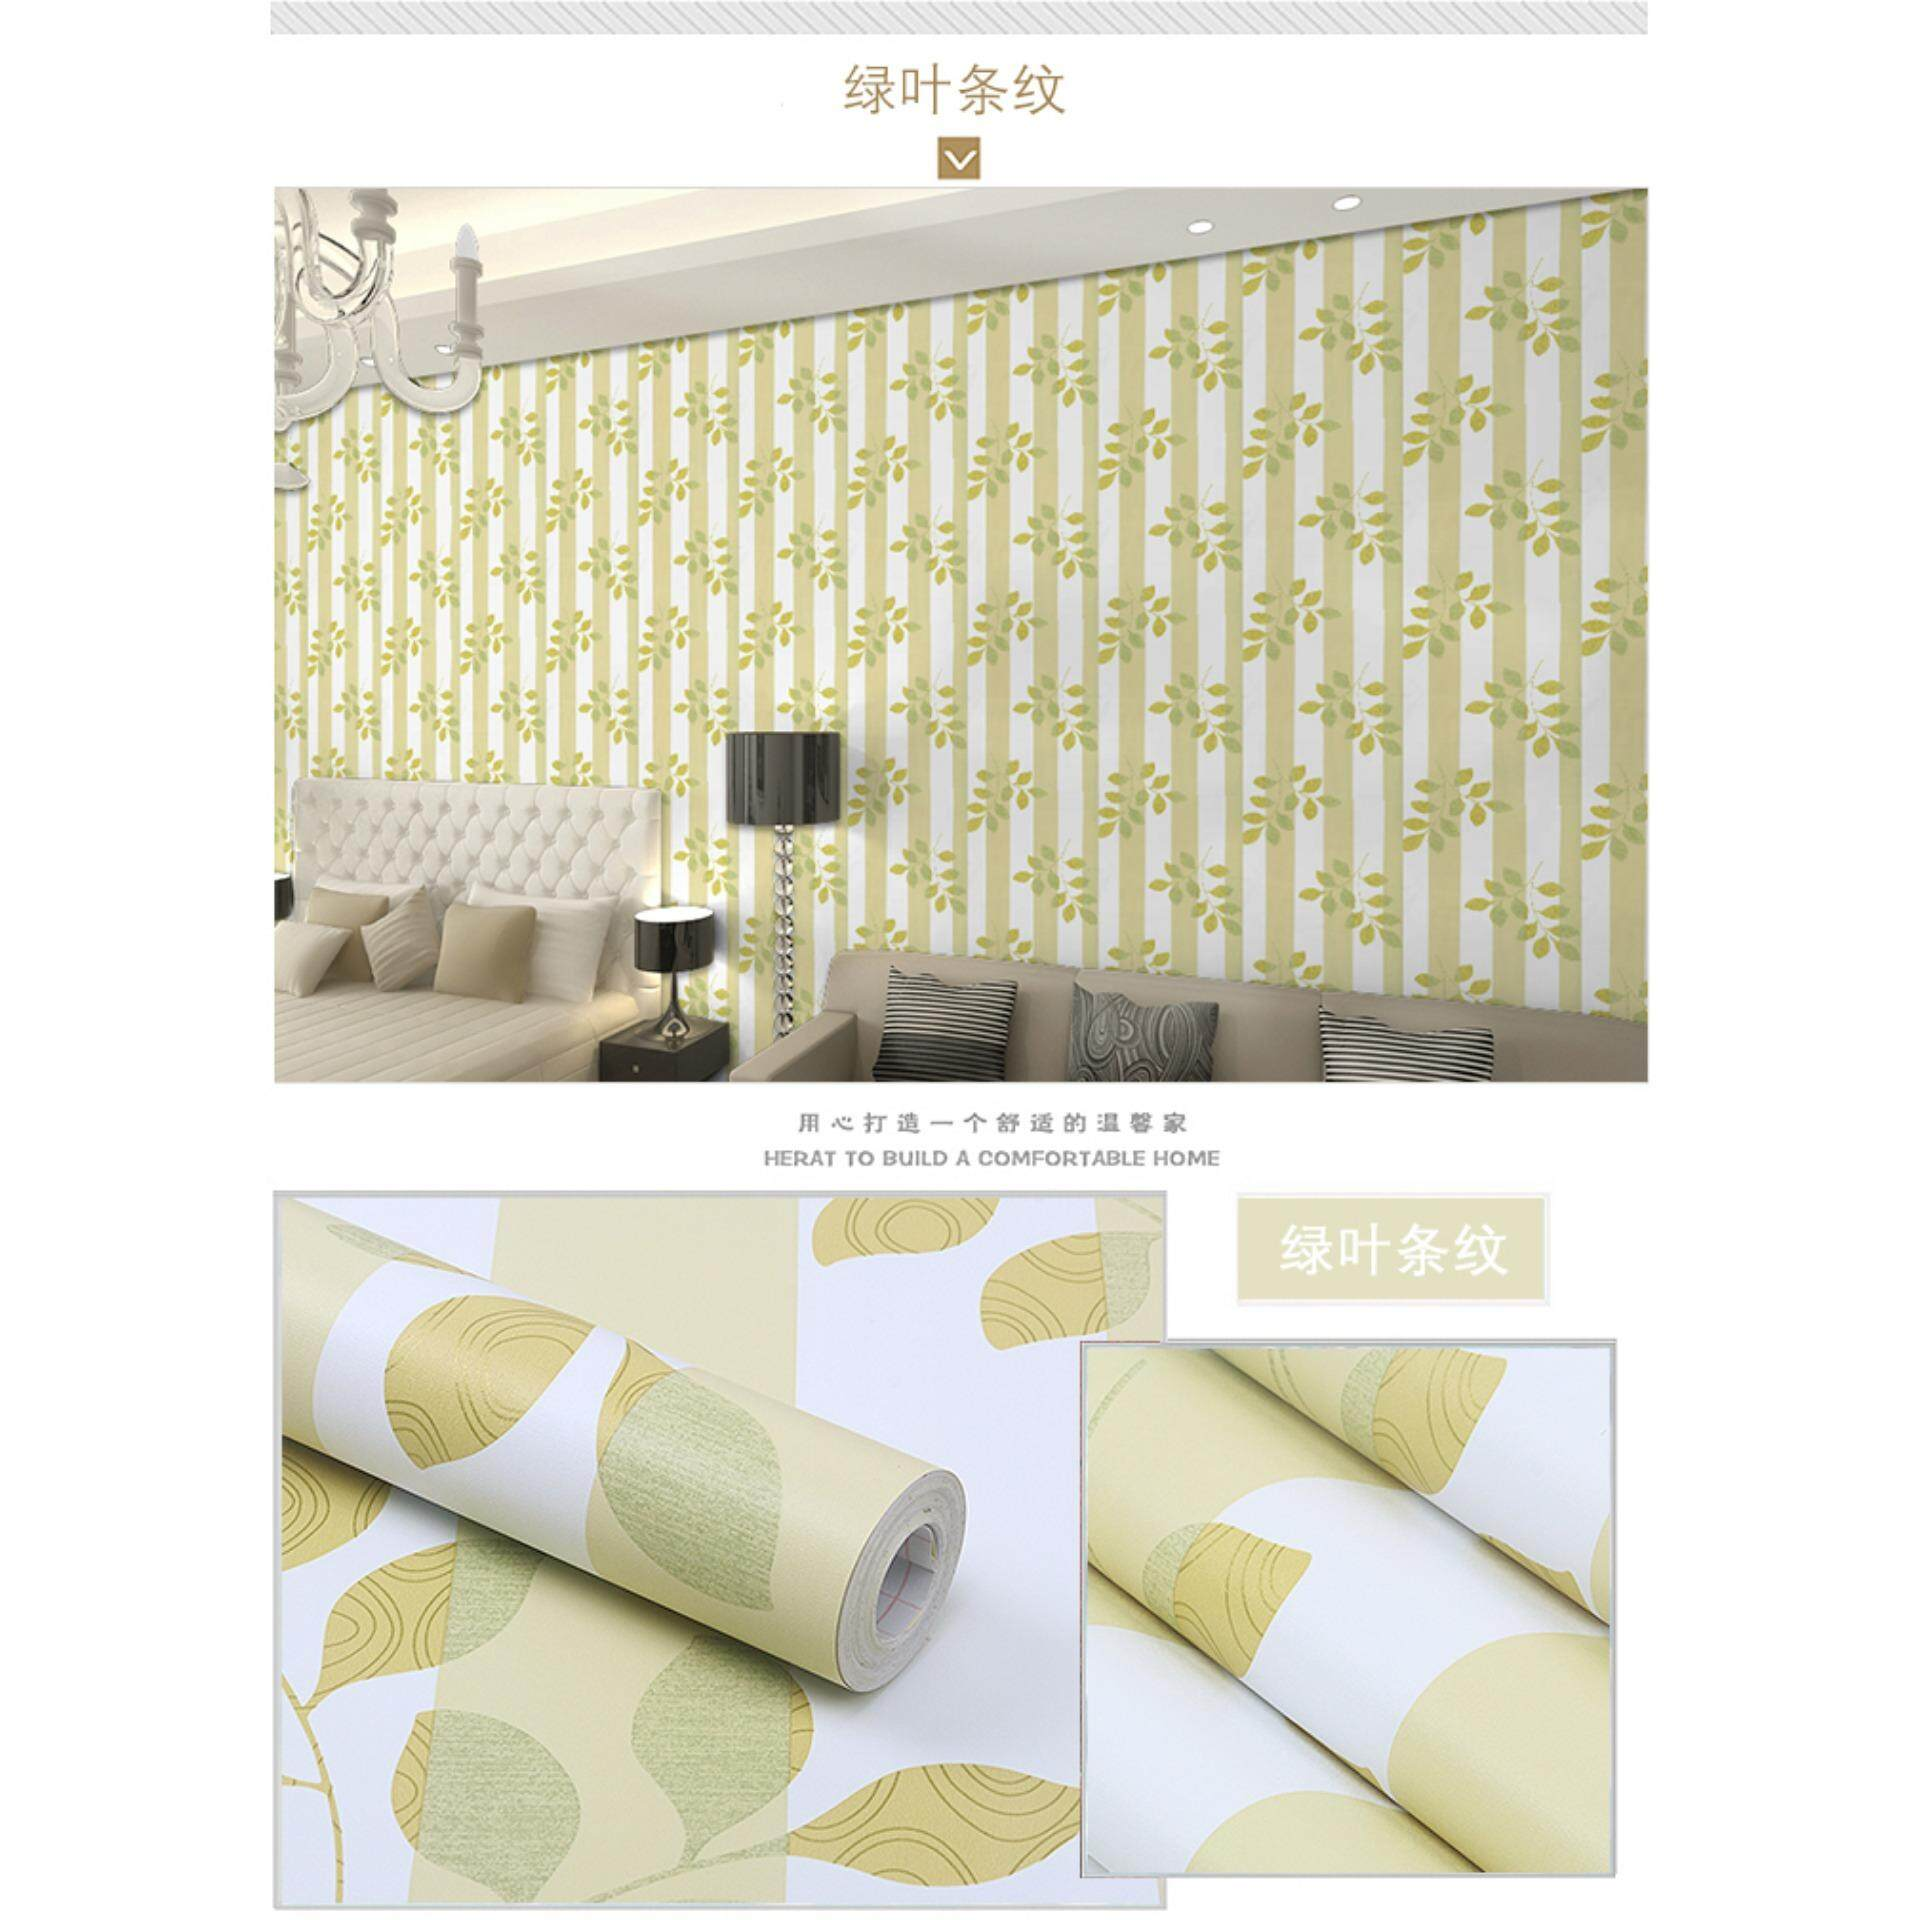 Leaf / Bamboo Self Adhesive Wallpaper 45cm x 10m (Ready Stock) Home Decor Kertas Dinding Sticker Wall Paper